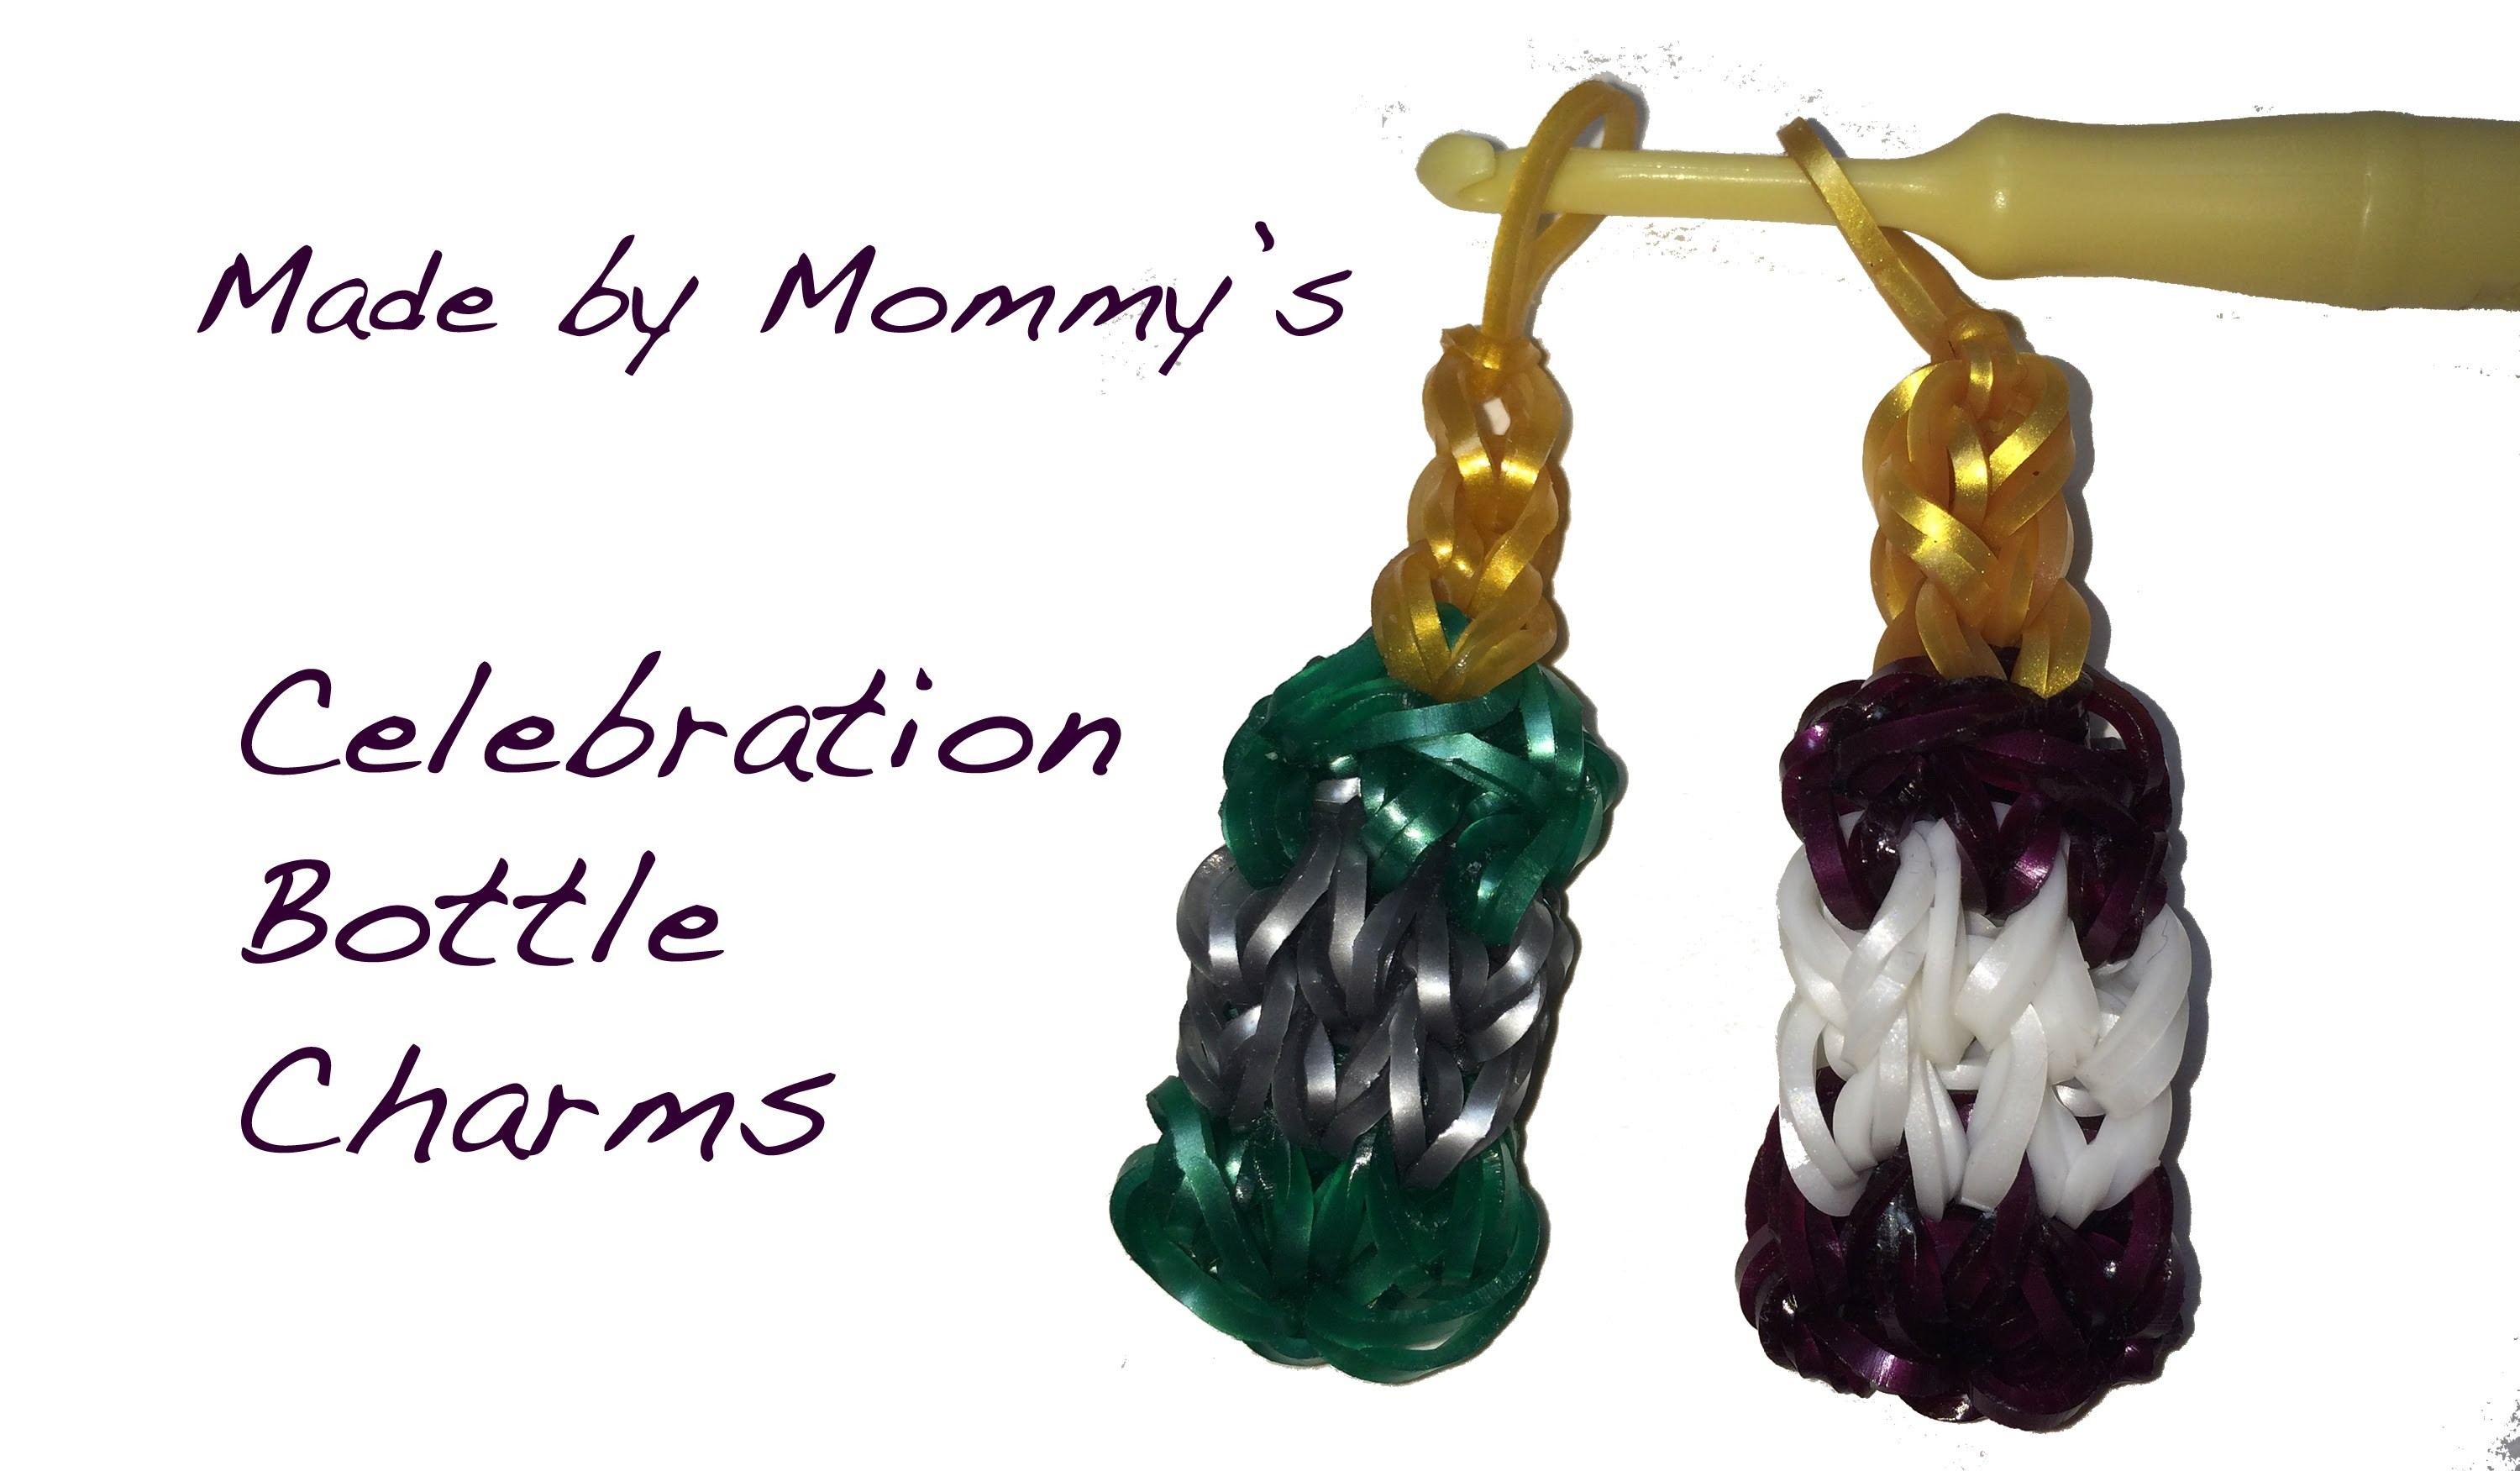 Rainbow Loom Bottle Charm - Wine, Champagne or Apple Cider?